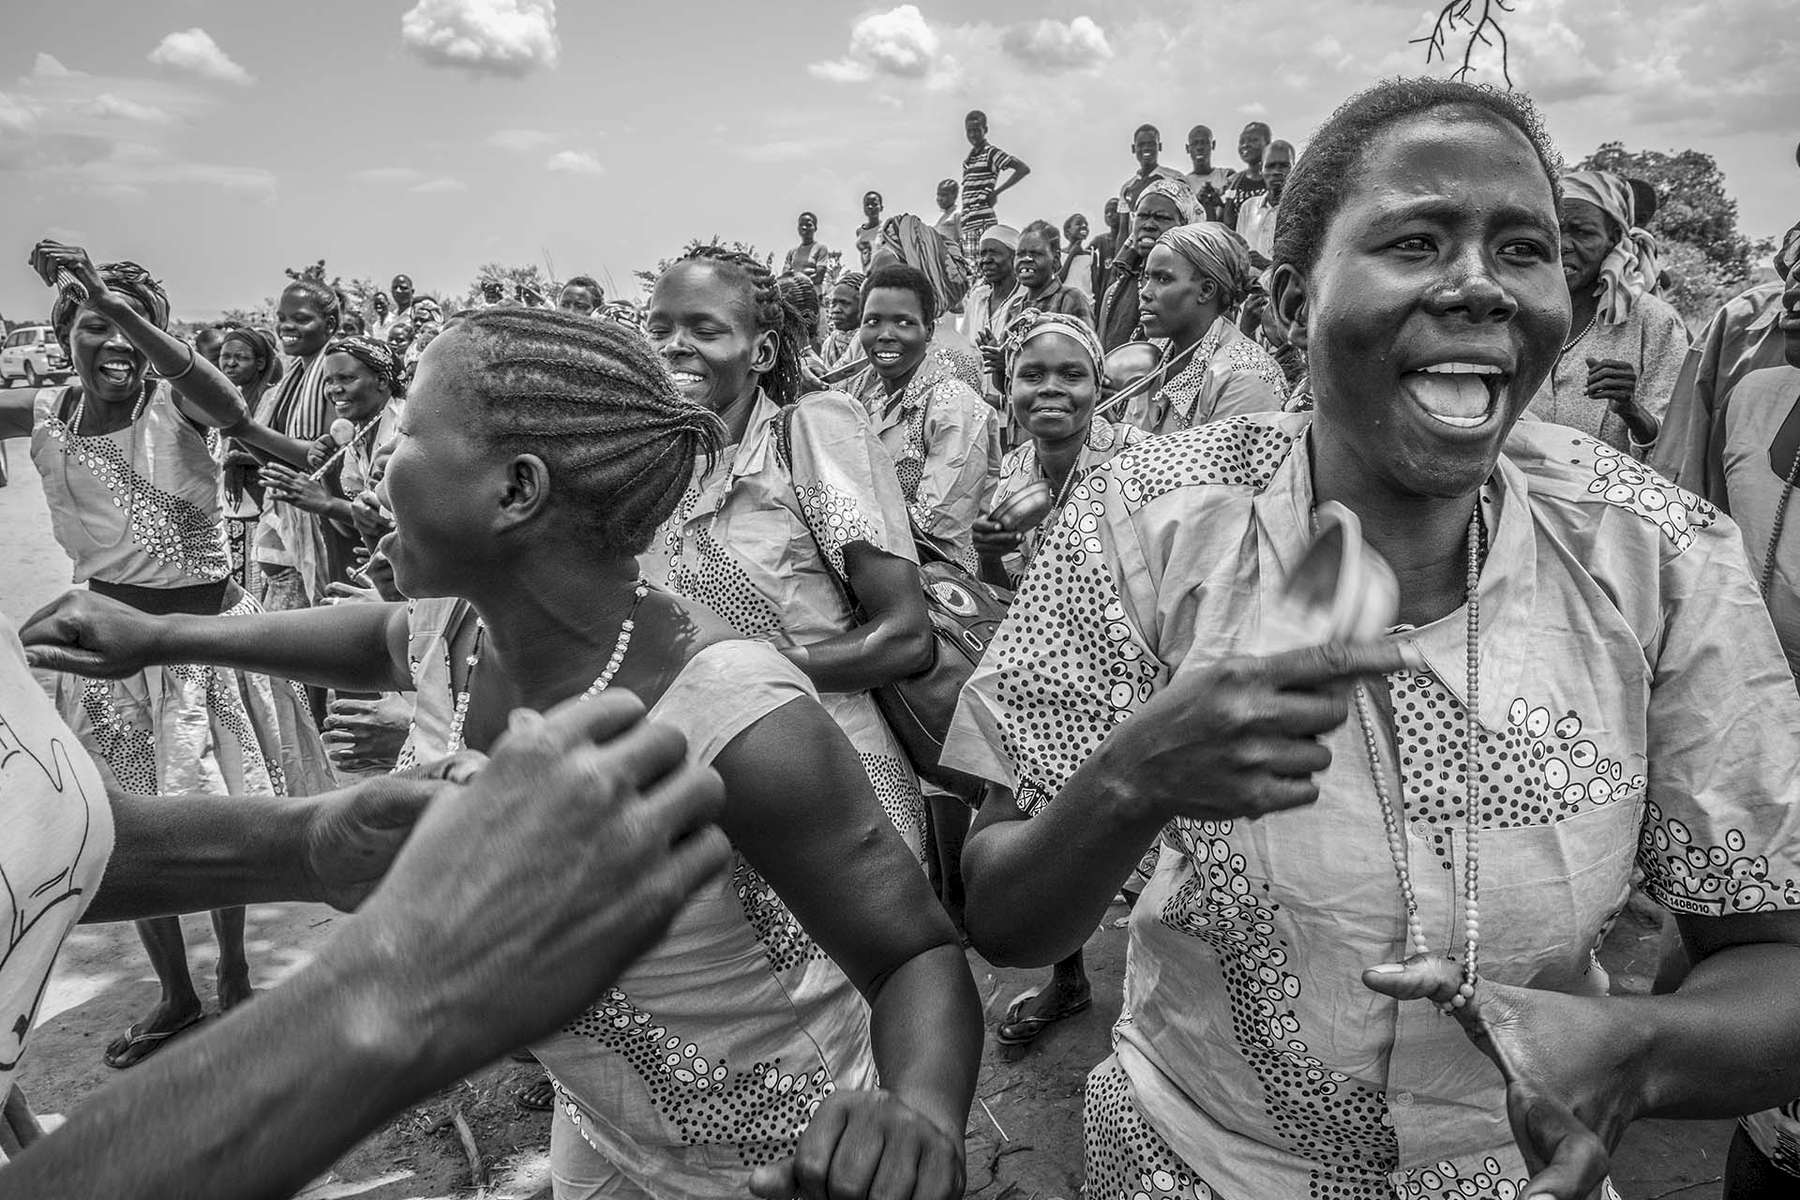 Refugee from South Sudan gather to welcome the arrival of Filippo Grandi, United High Commissioner for Refugees at Pagirinya refugee settlement in Adjumani district of Uganda August 29, 2016. © Jiro Ose